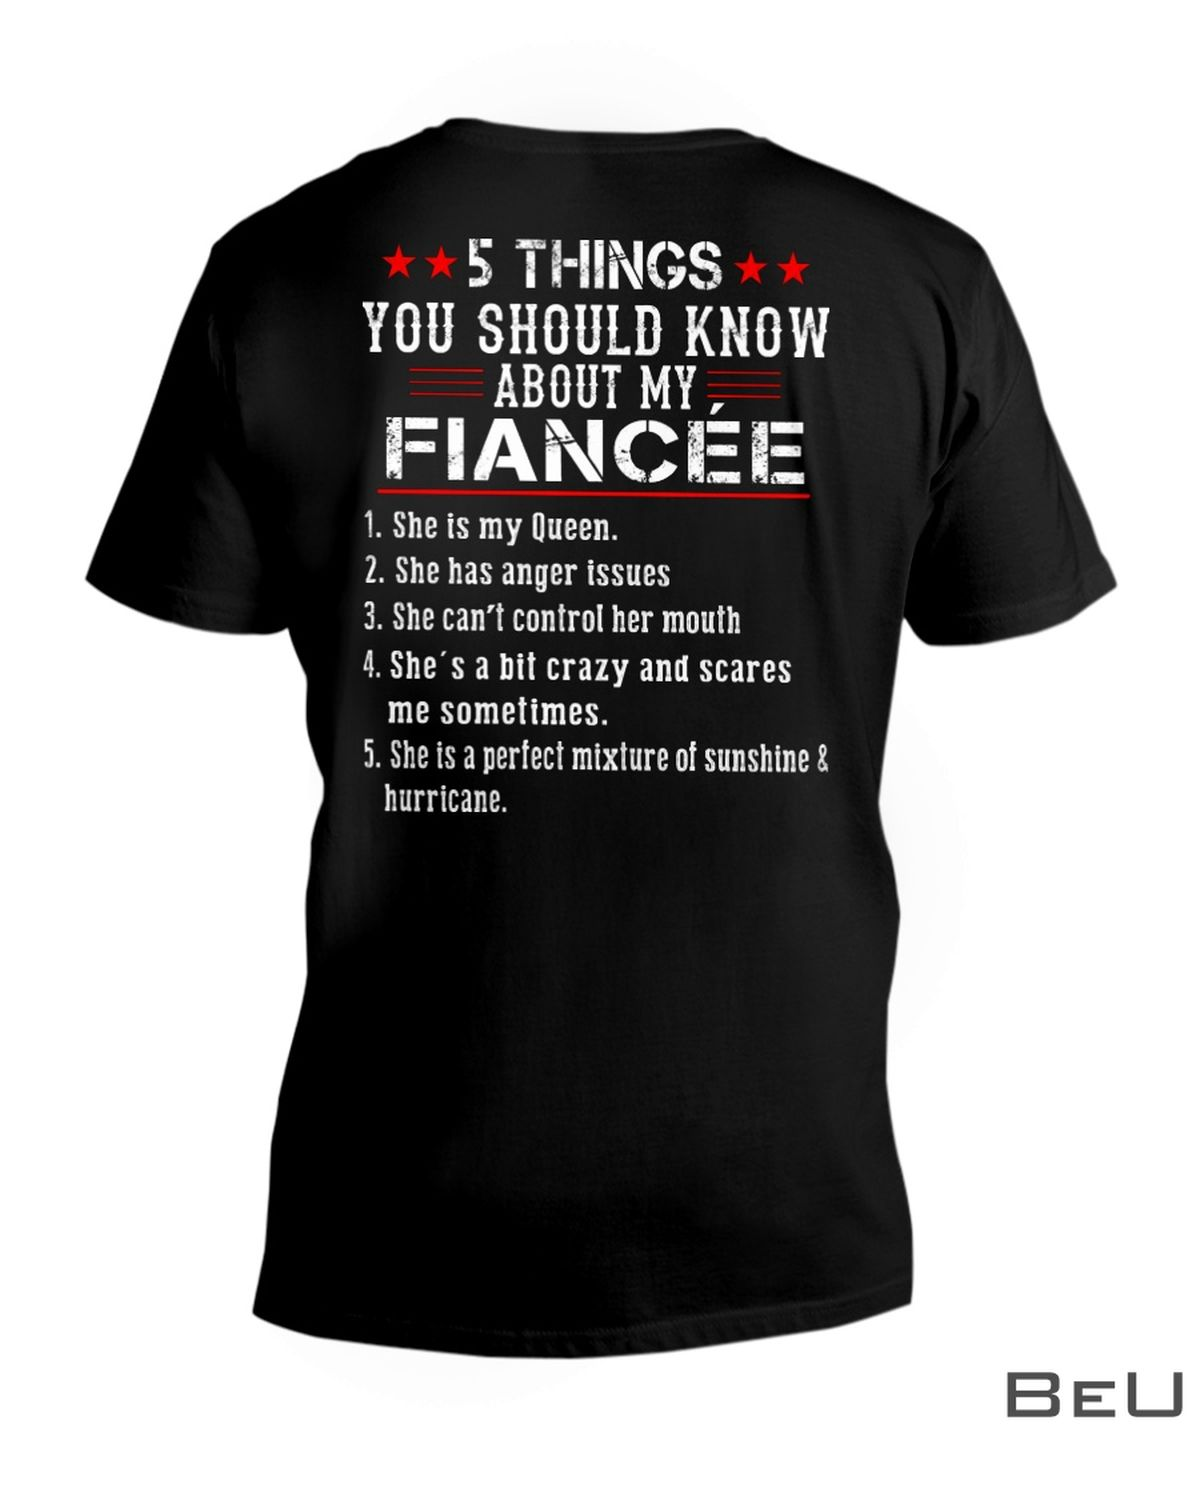 5 Thing You Should Know About My Fiancée Shirtx